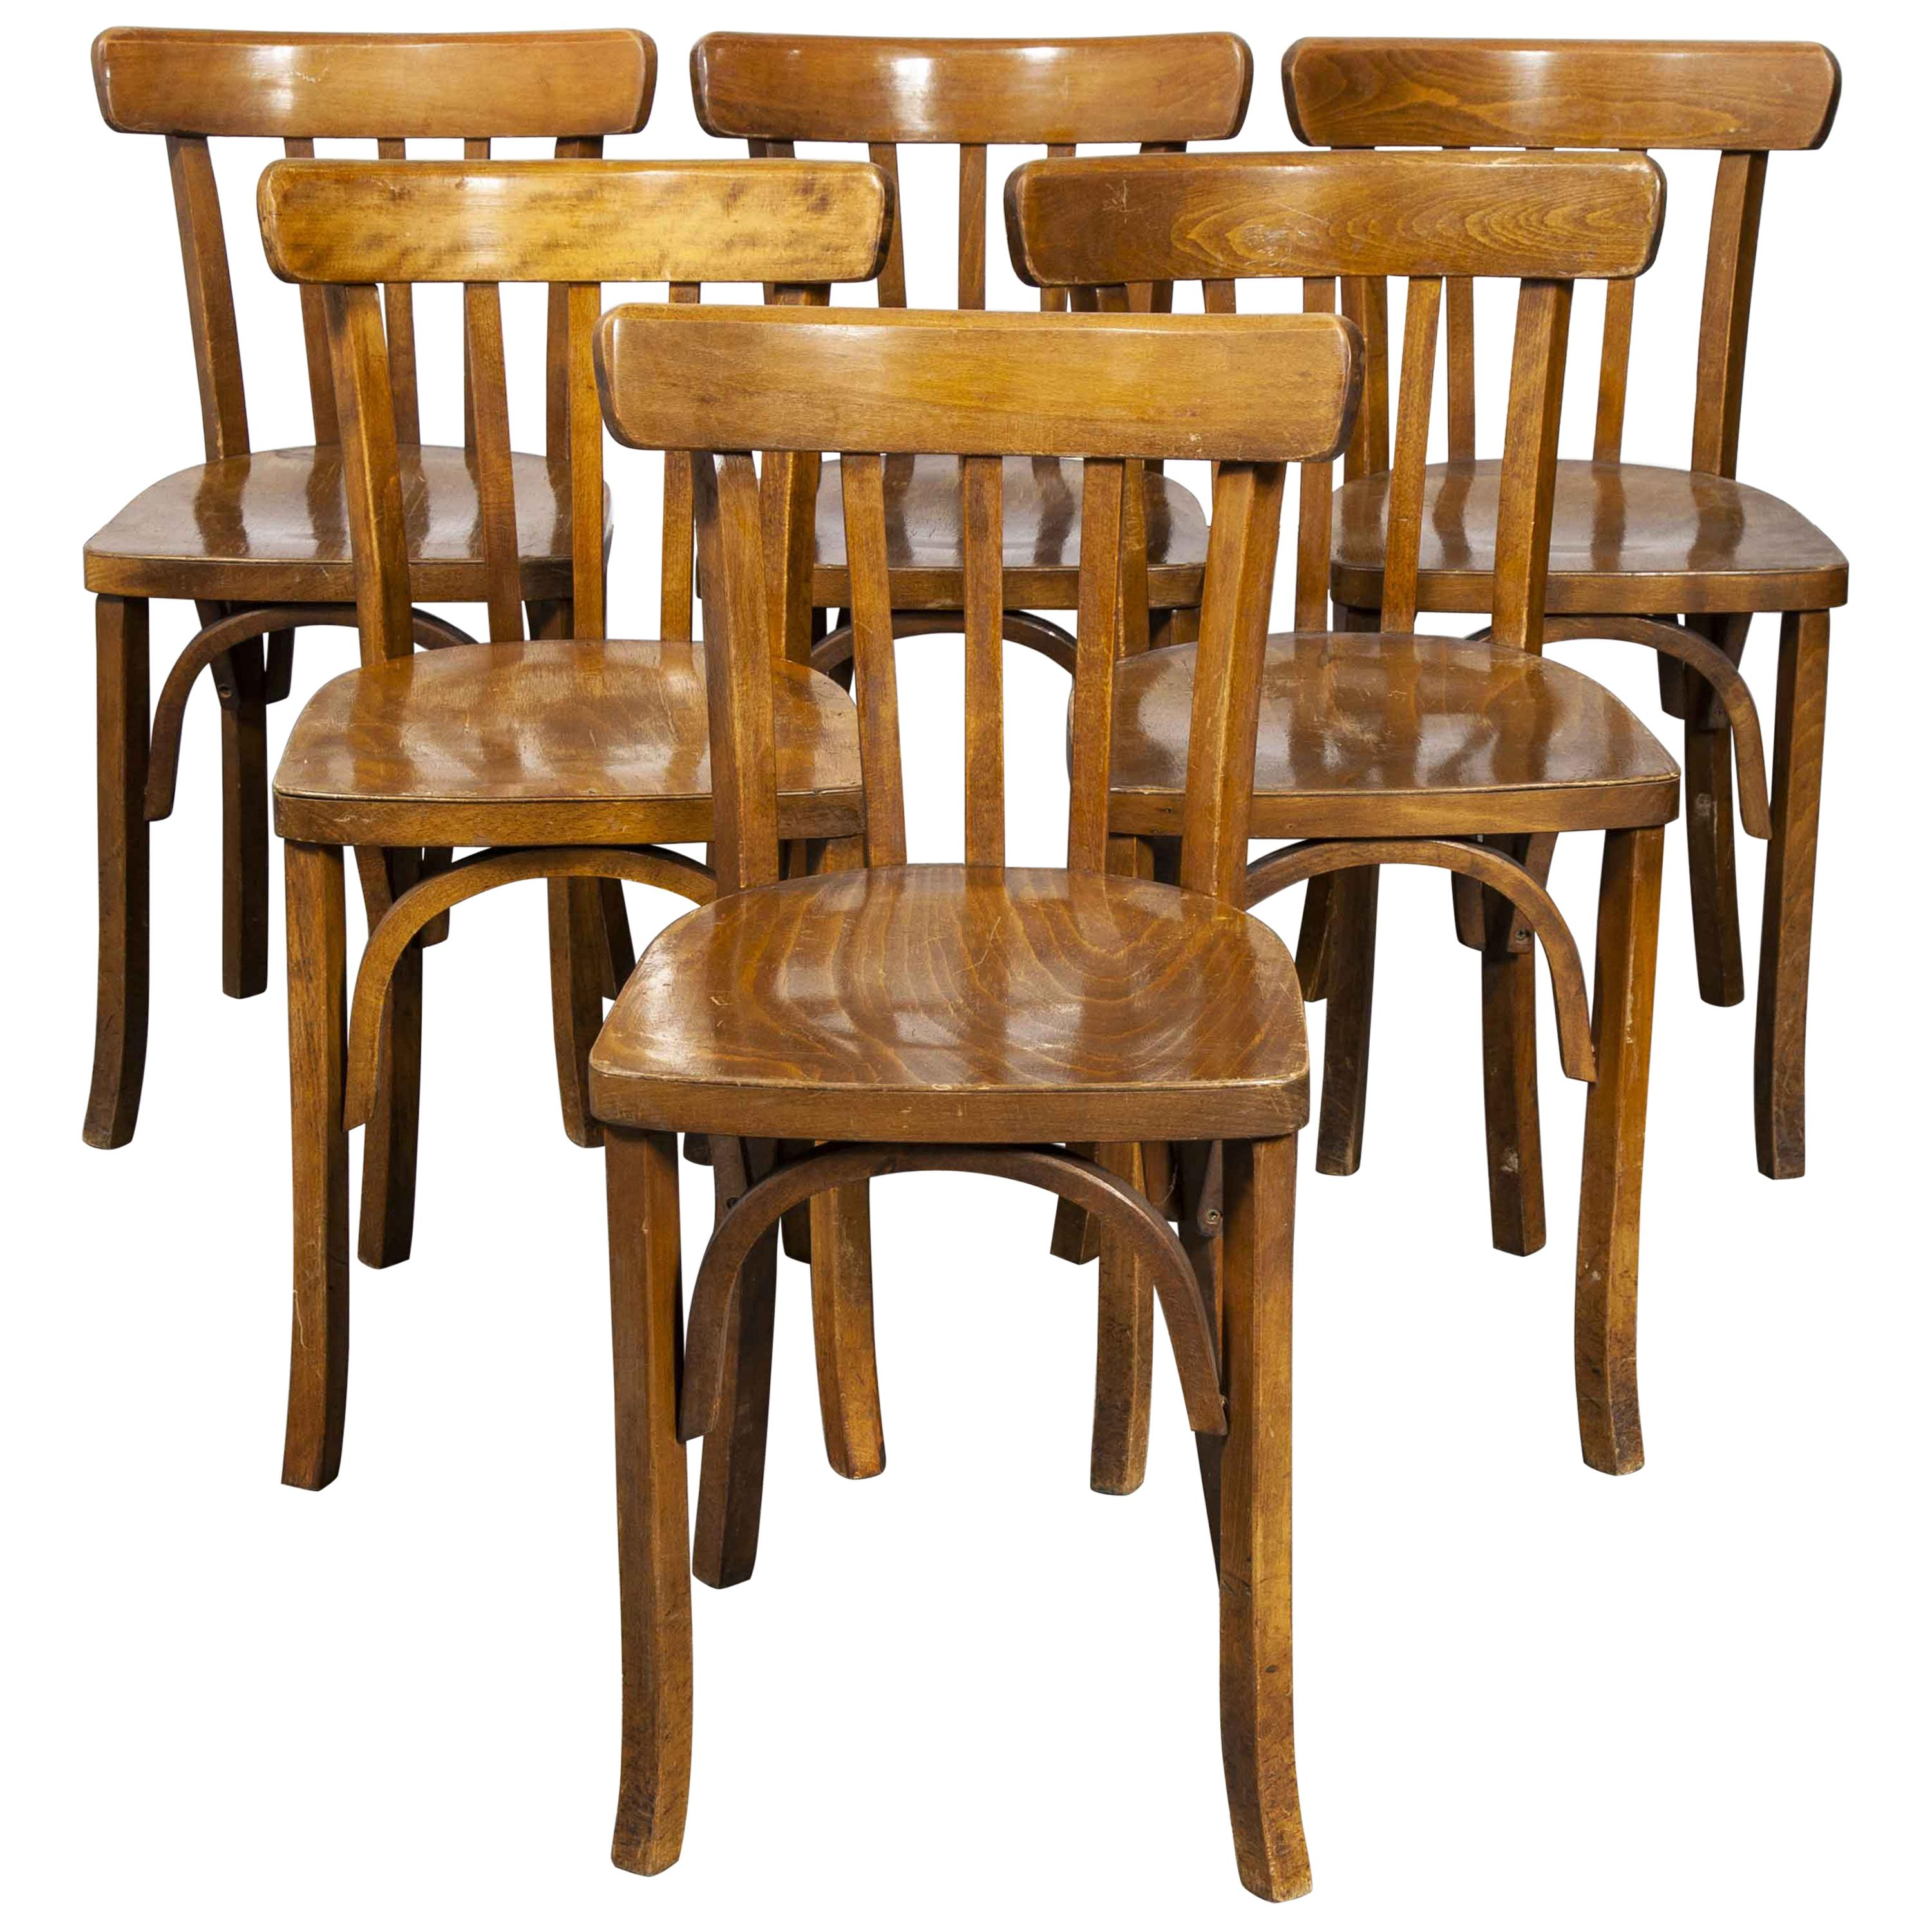 1950's Luterma Bentwood Dining Chair, Set of Six